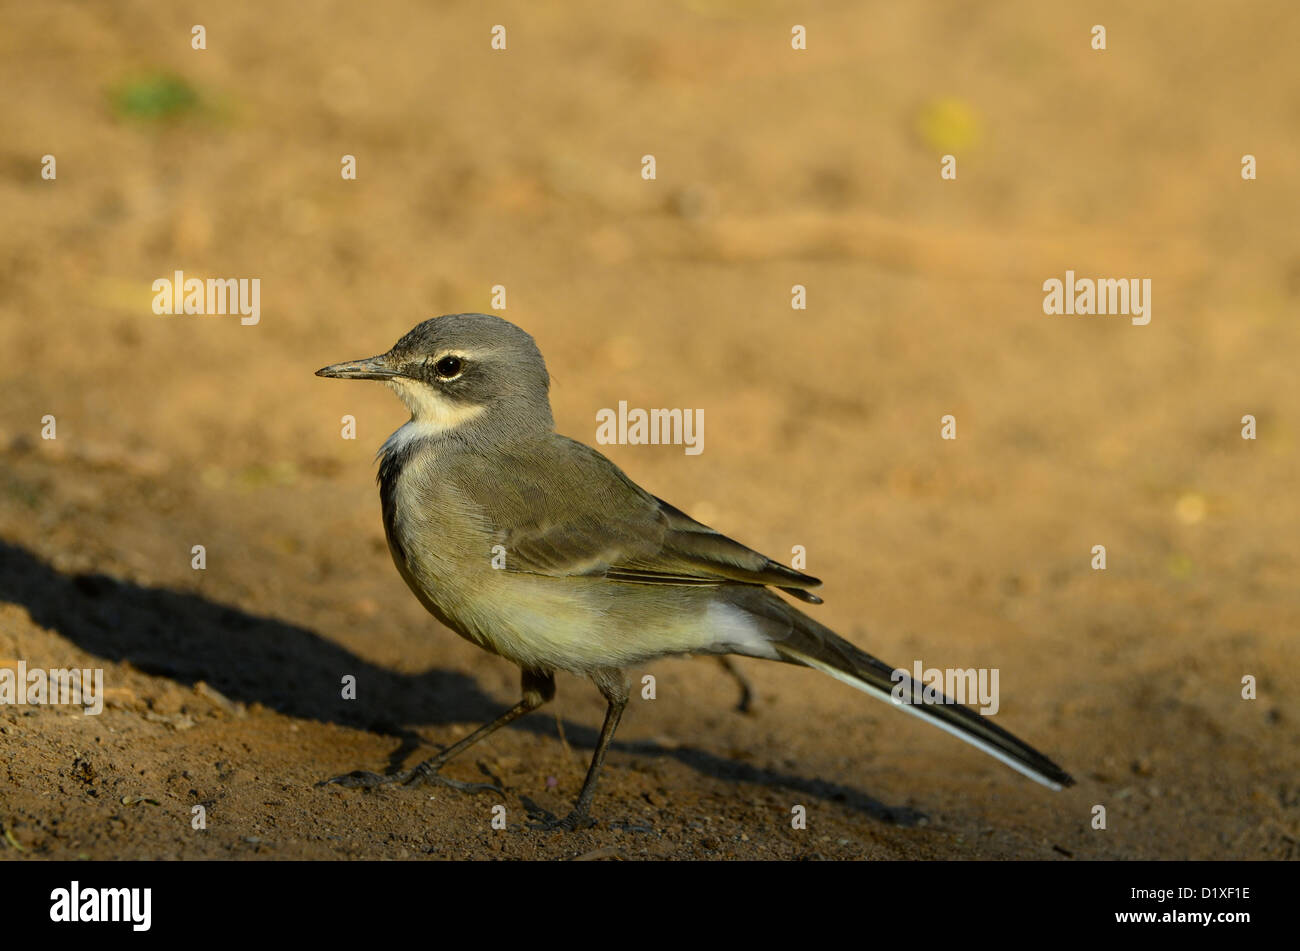 Cape wagtail, Karoo, South Africa - Stock Image